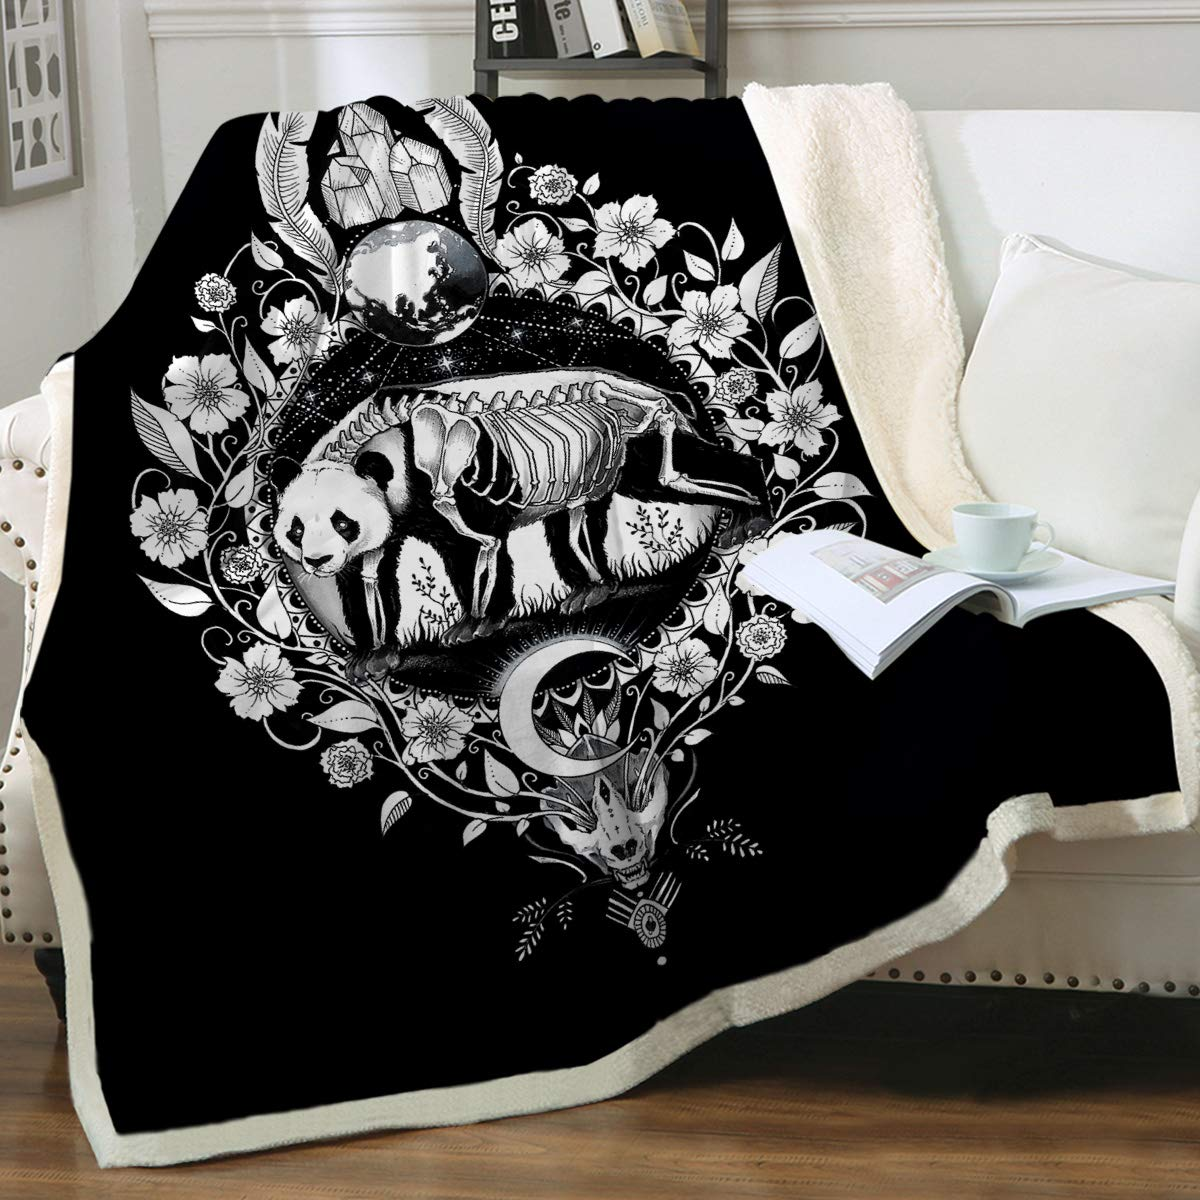 "Panda Black by Pixie Cold Art Zombie Panda Blankets and Throws Soft Fleece Sugar Skull Blanket Black Skeleton Sherpa Plush Blanket for Boys and Adults,Twin (60"" X 80"")"